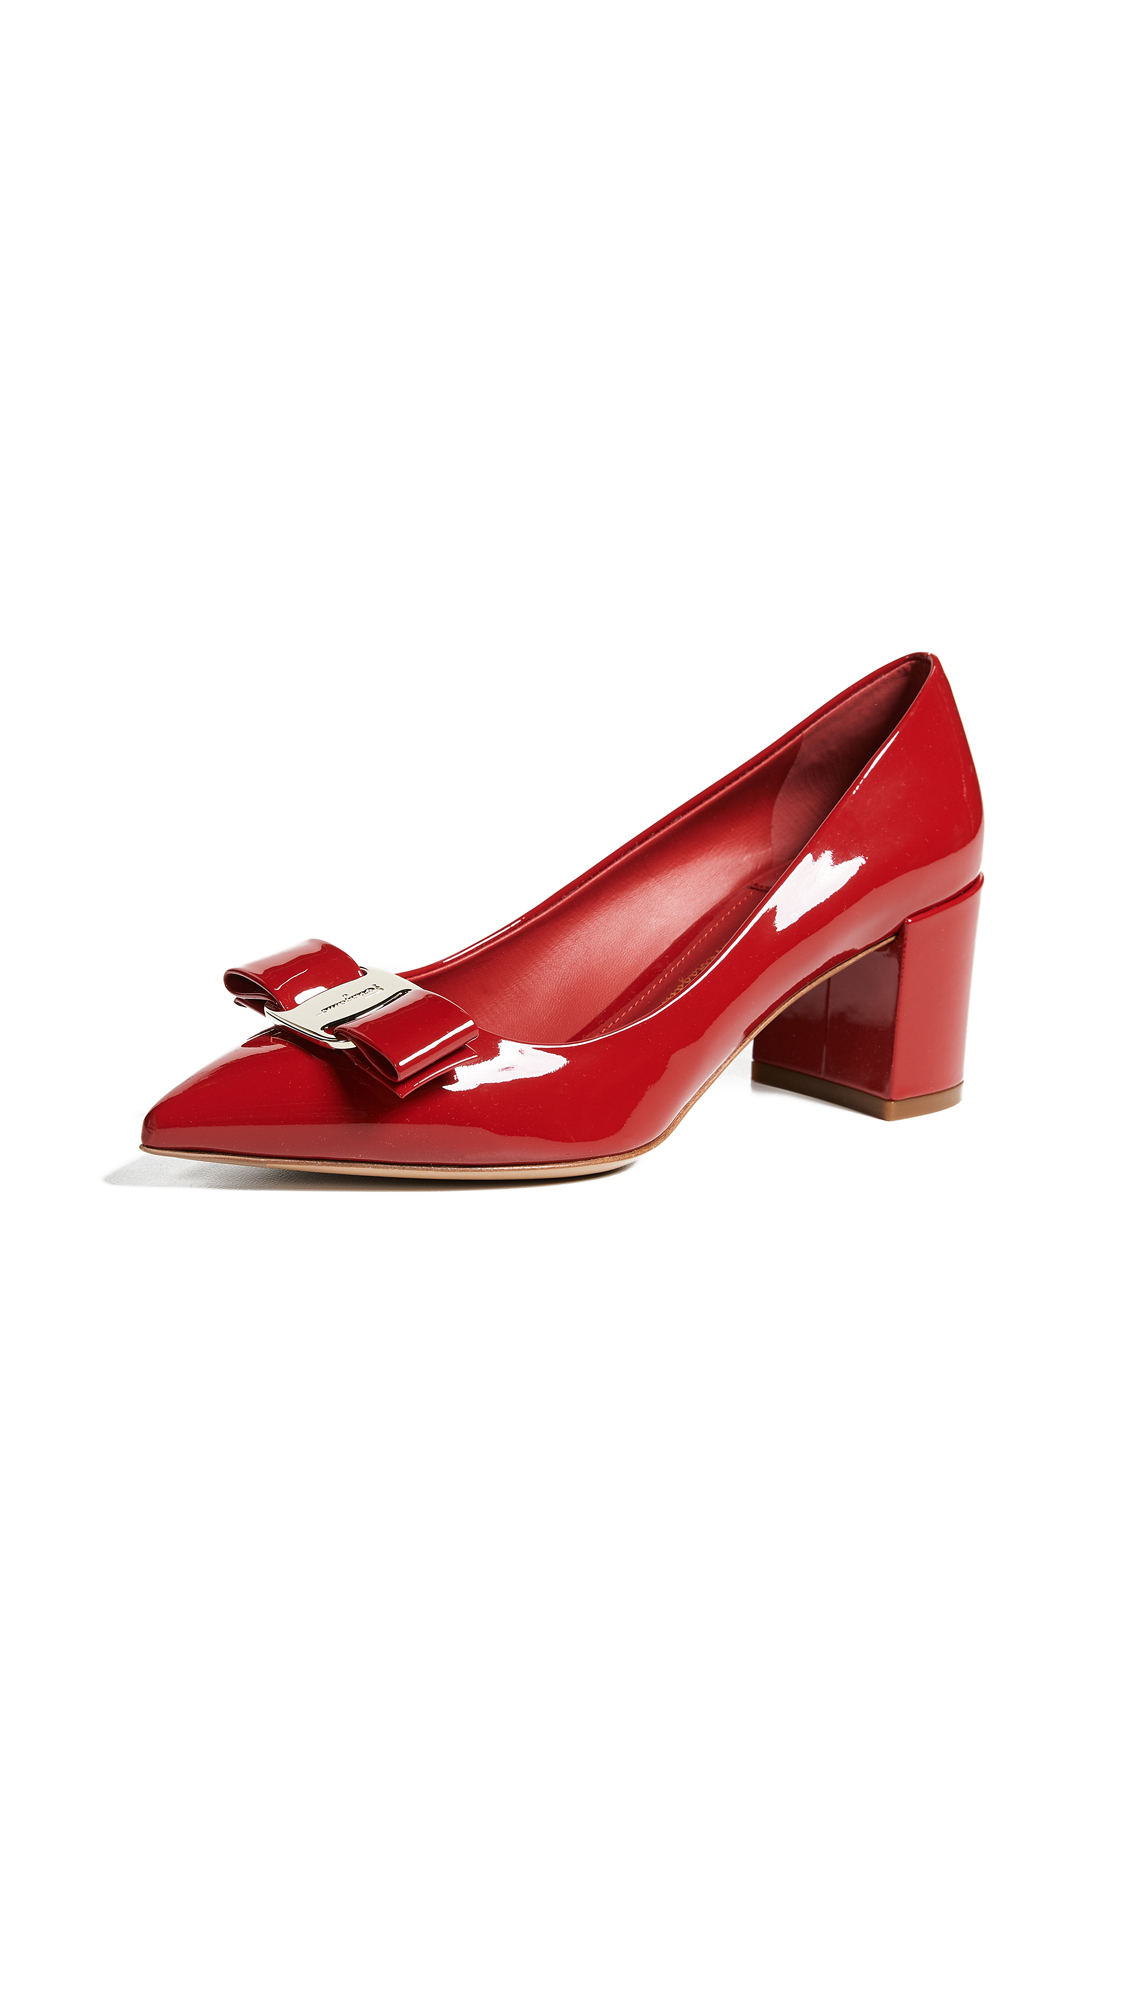 Salvatore Ferragamo Alice 55mm Pumps - Lipstick